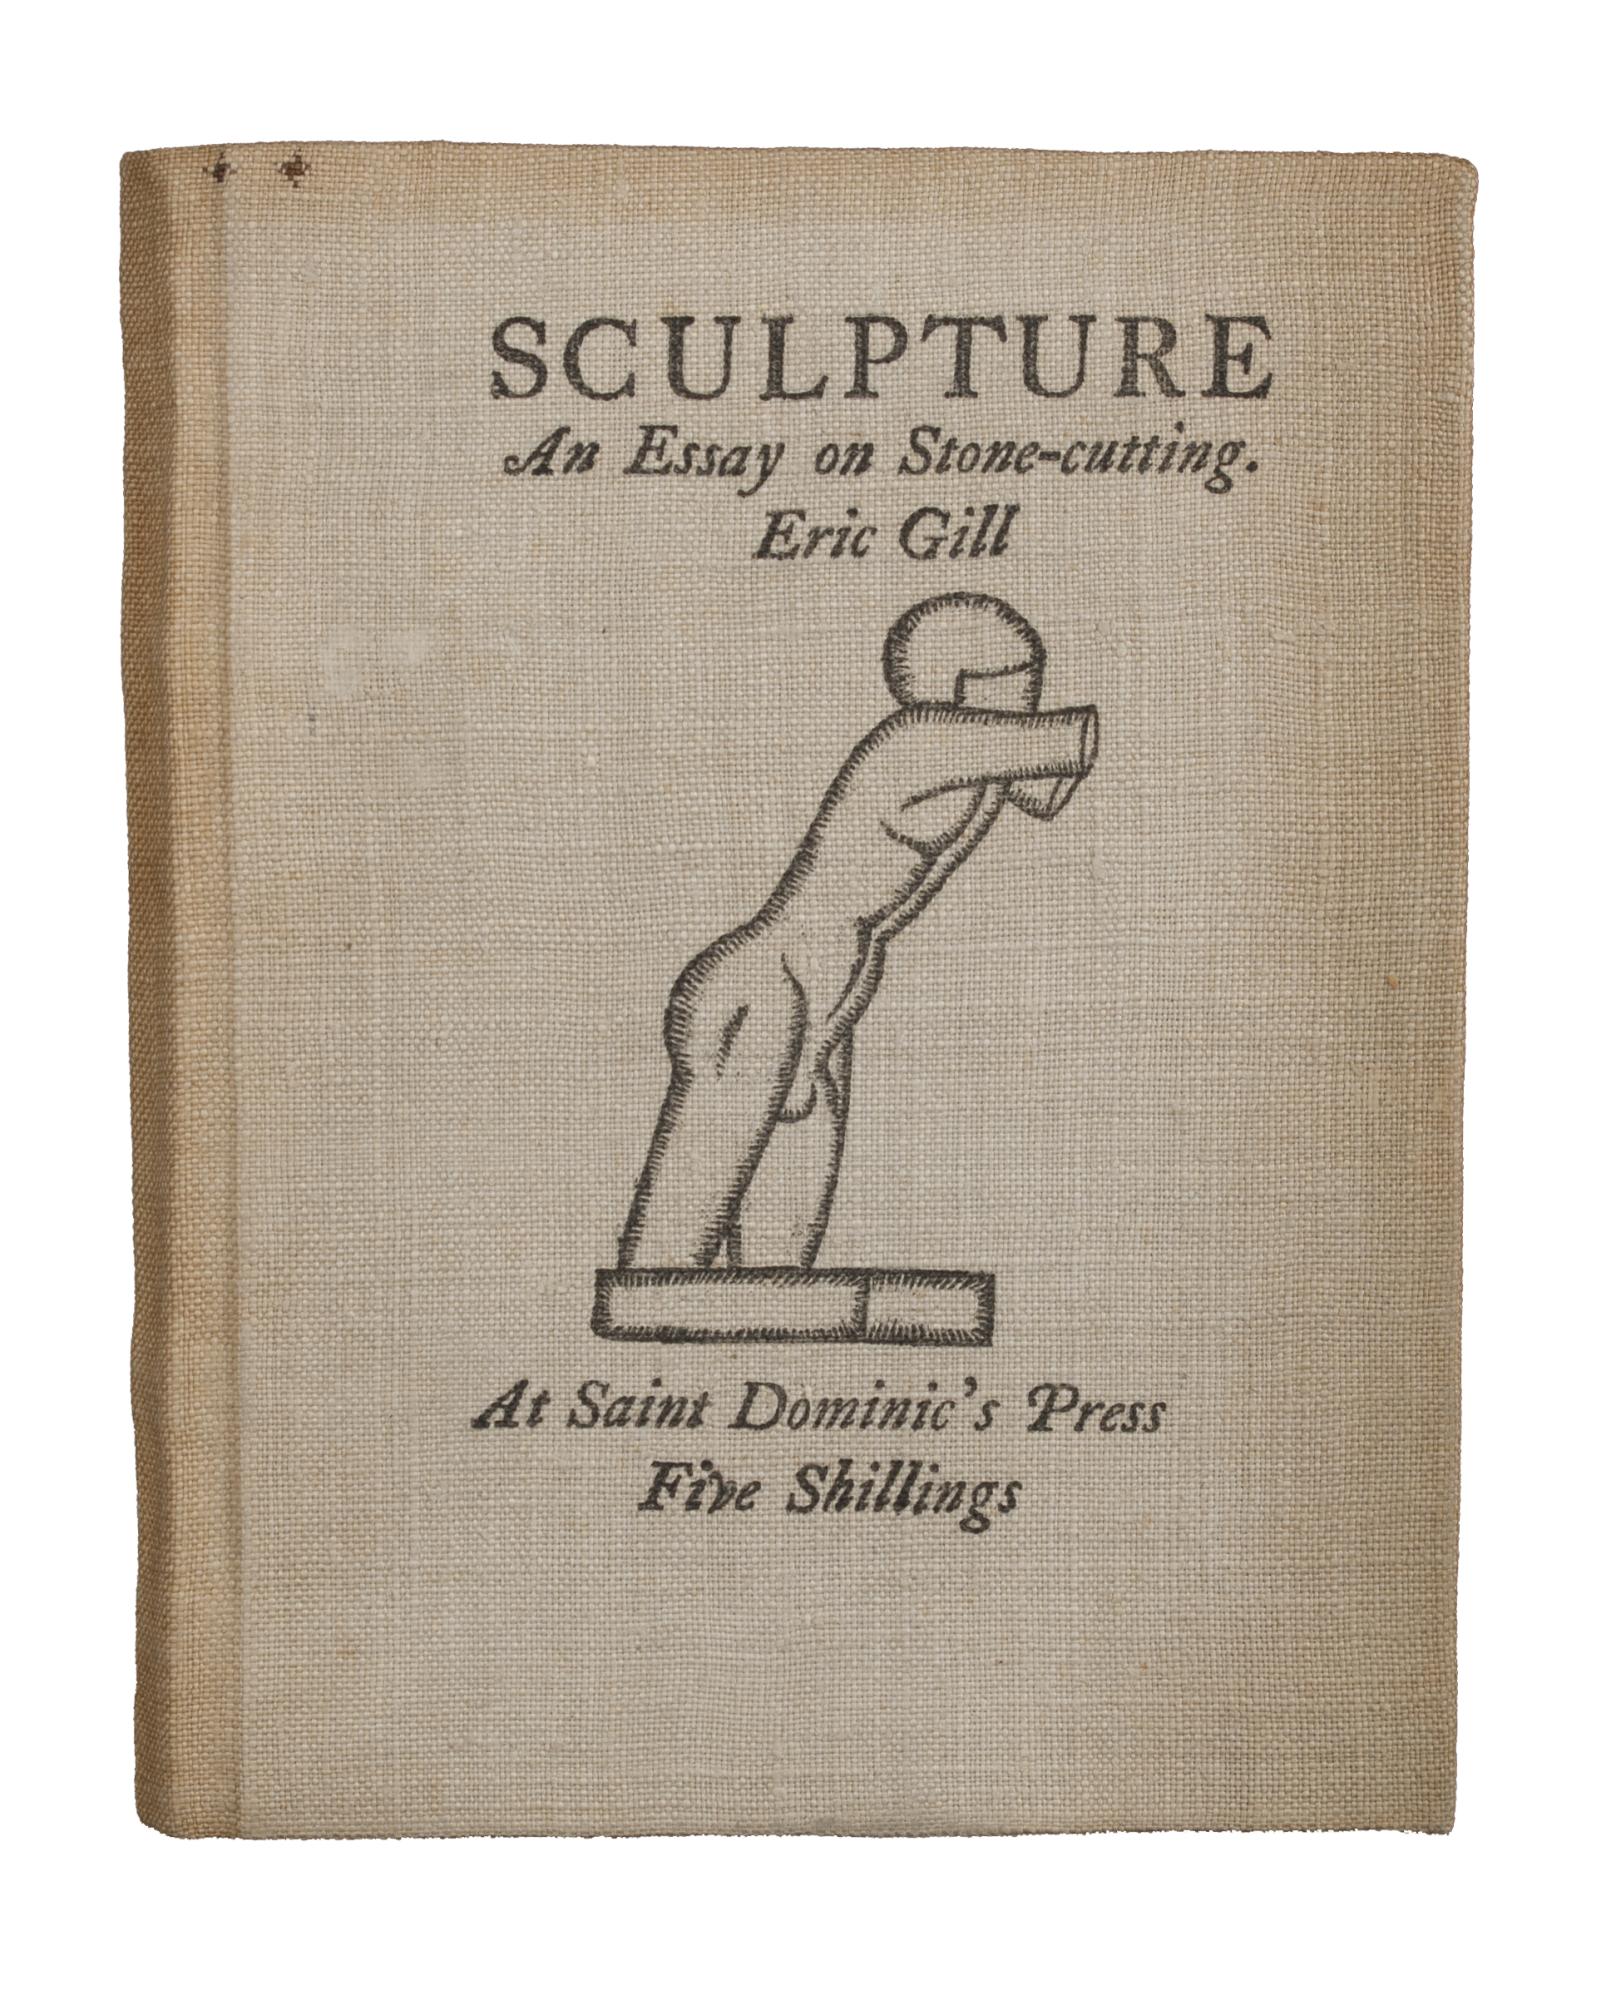 sculpture an essay on stone cutting a preface about god sculpture